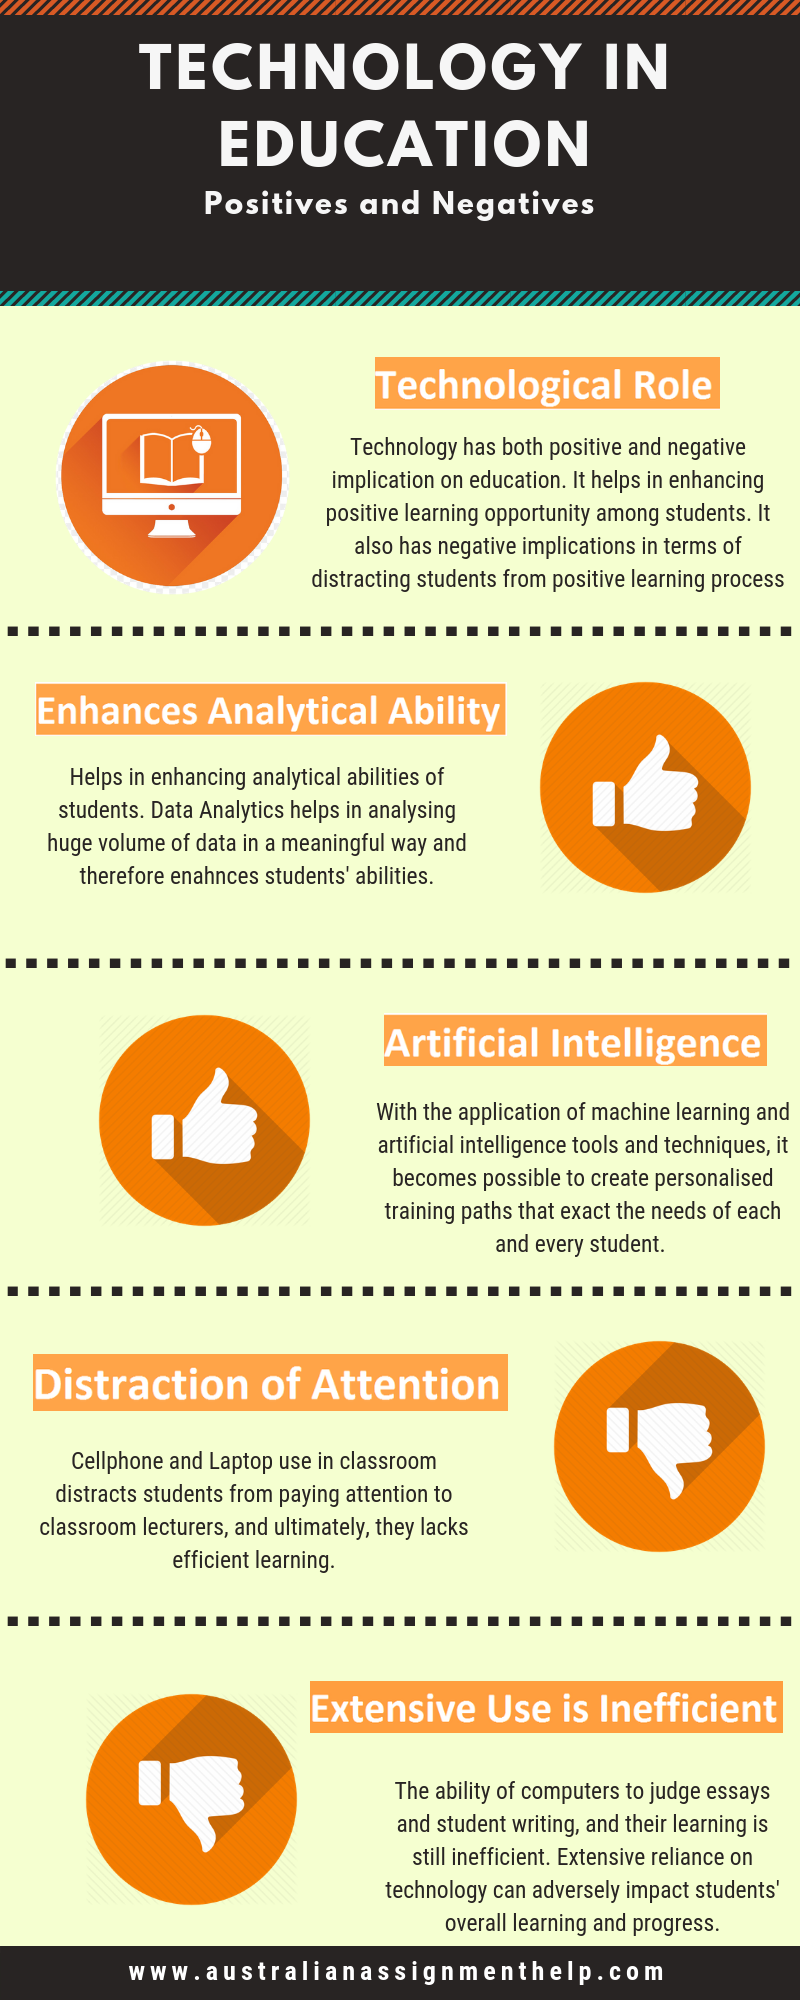 Positive and Negative Implication of Technology in Classroom Environment